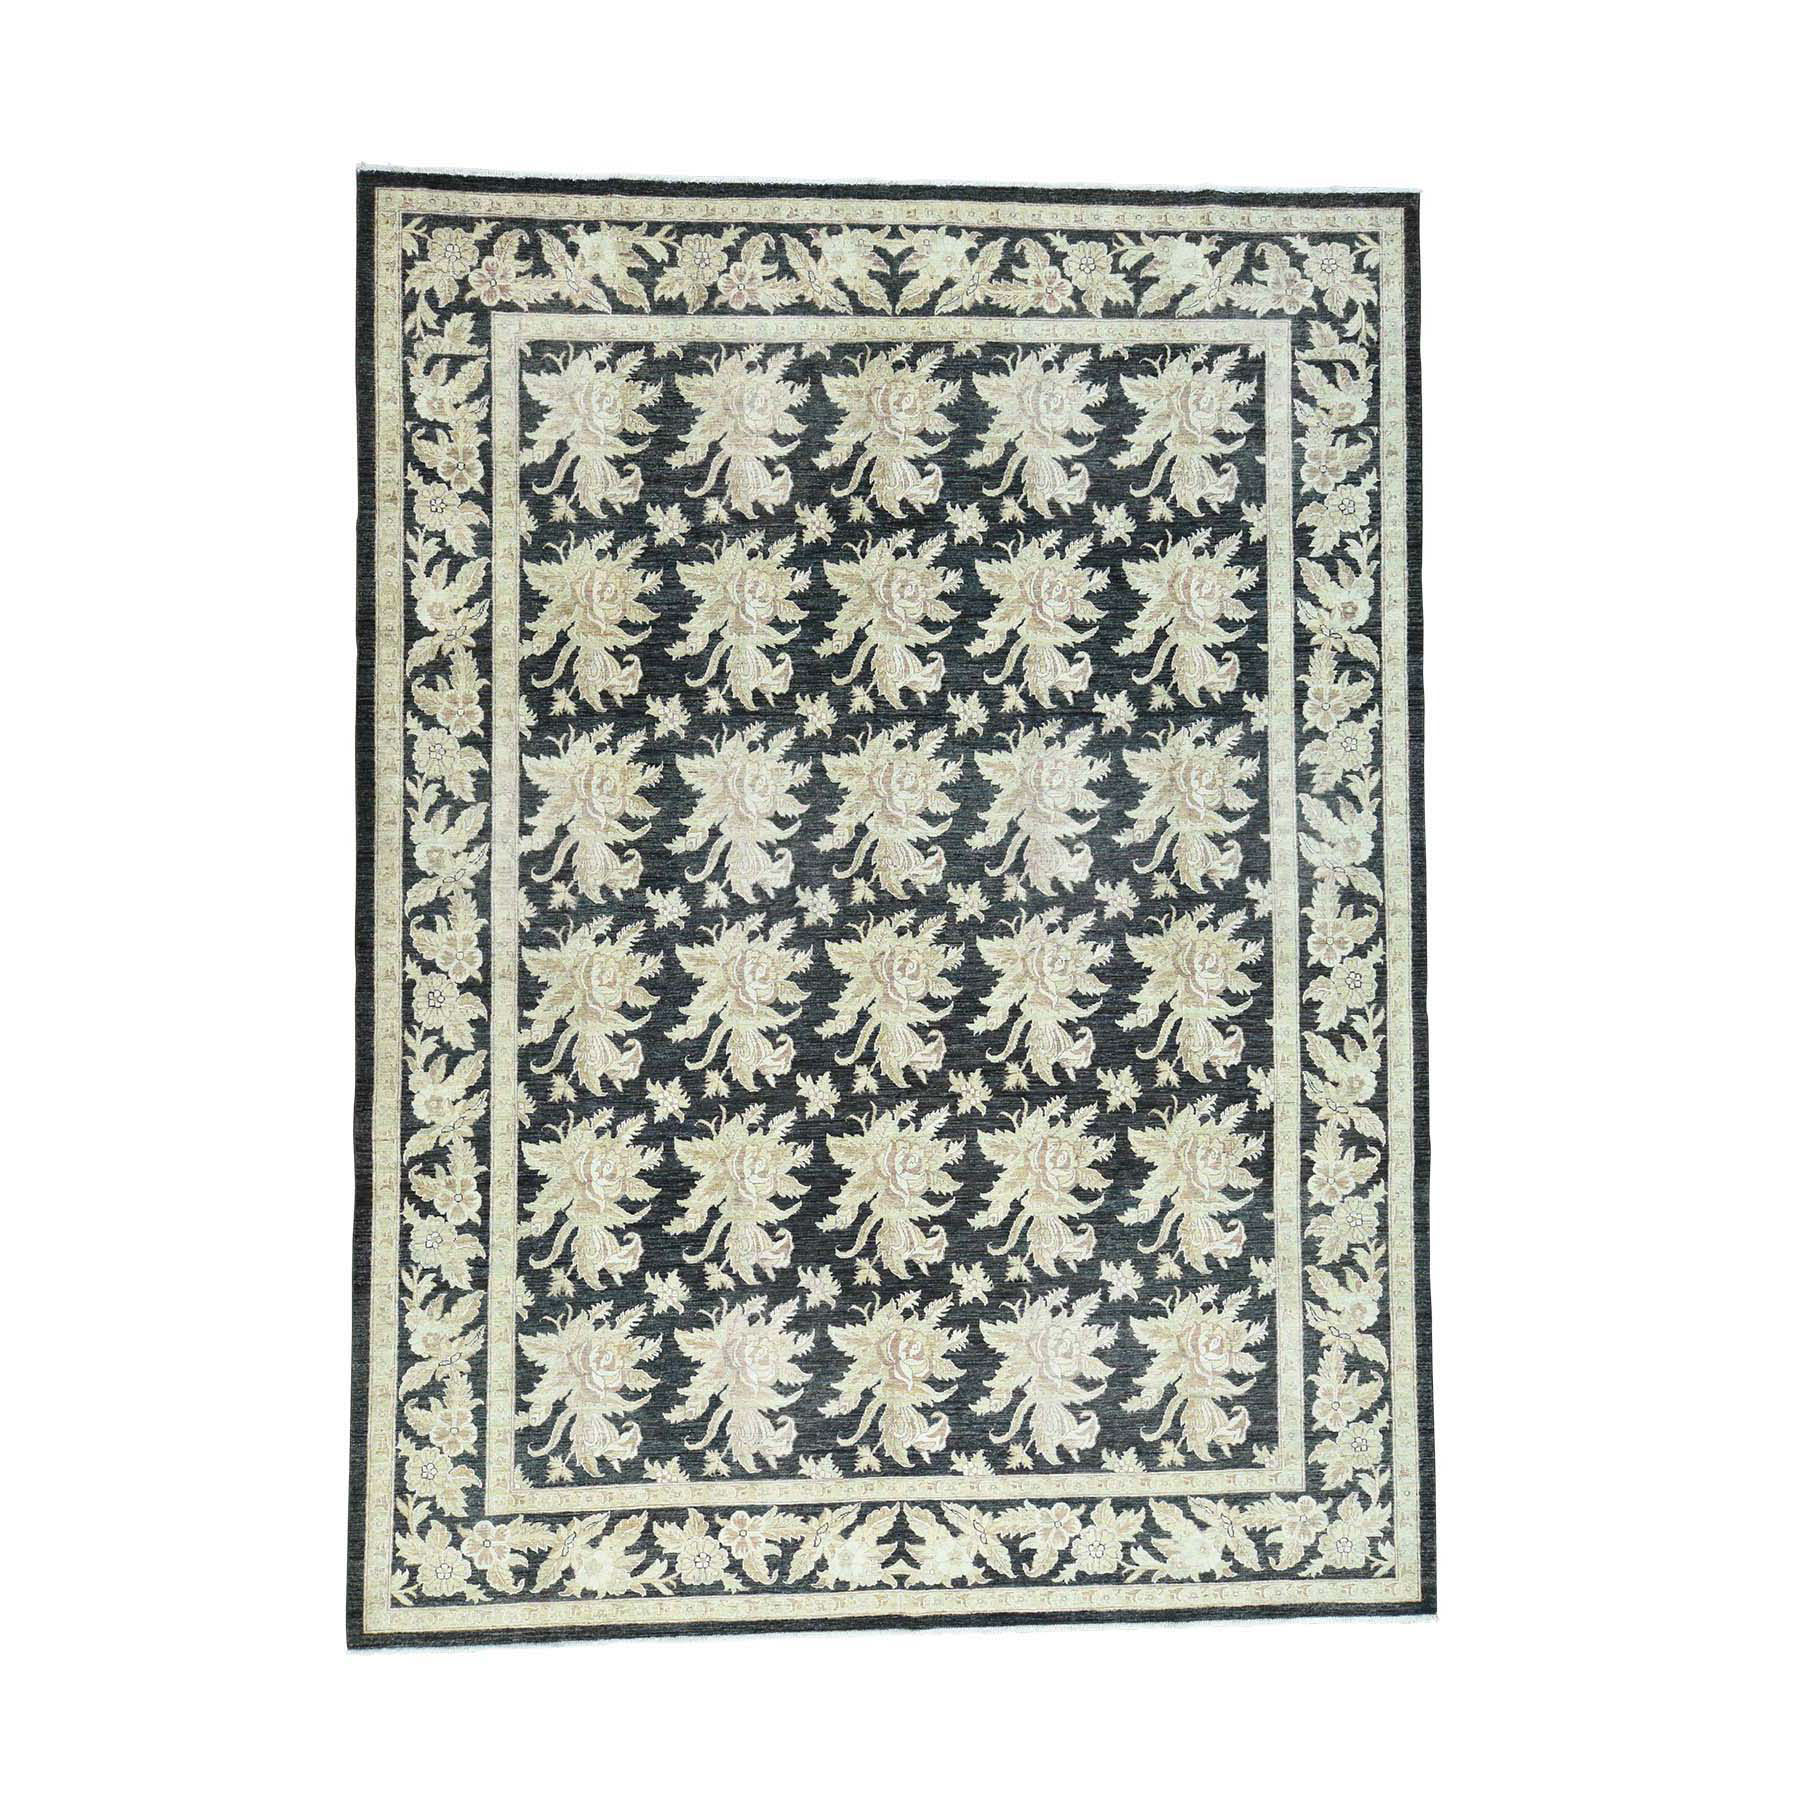 "9'1""X12'4"" Dense Weave Peshawar With Flower Design Hand-Knotted Rug moacc776"